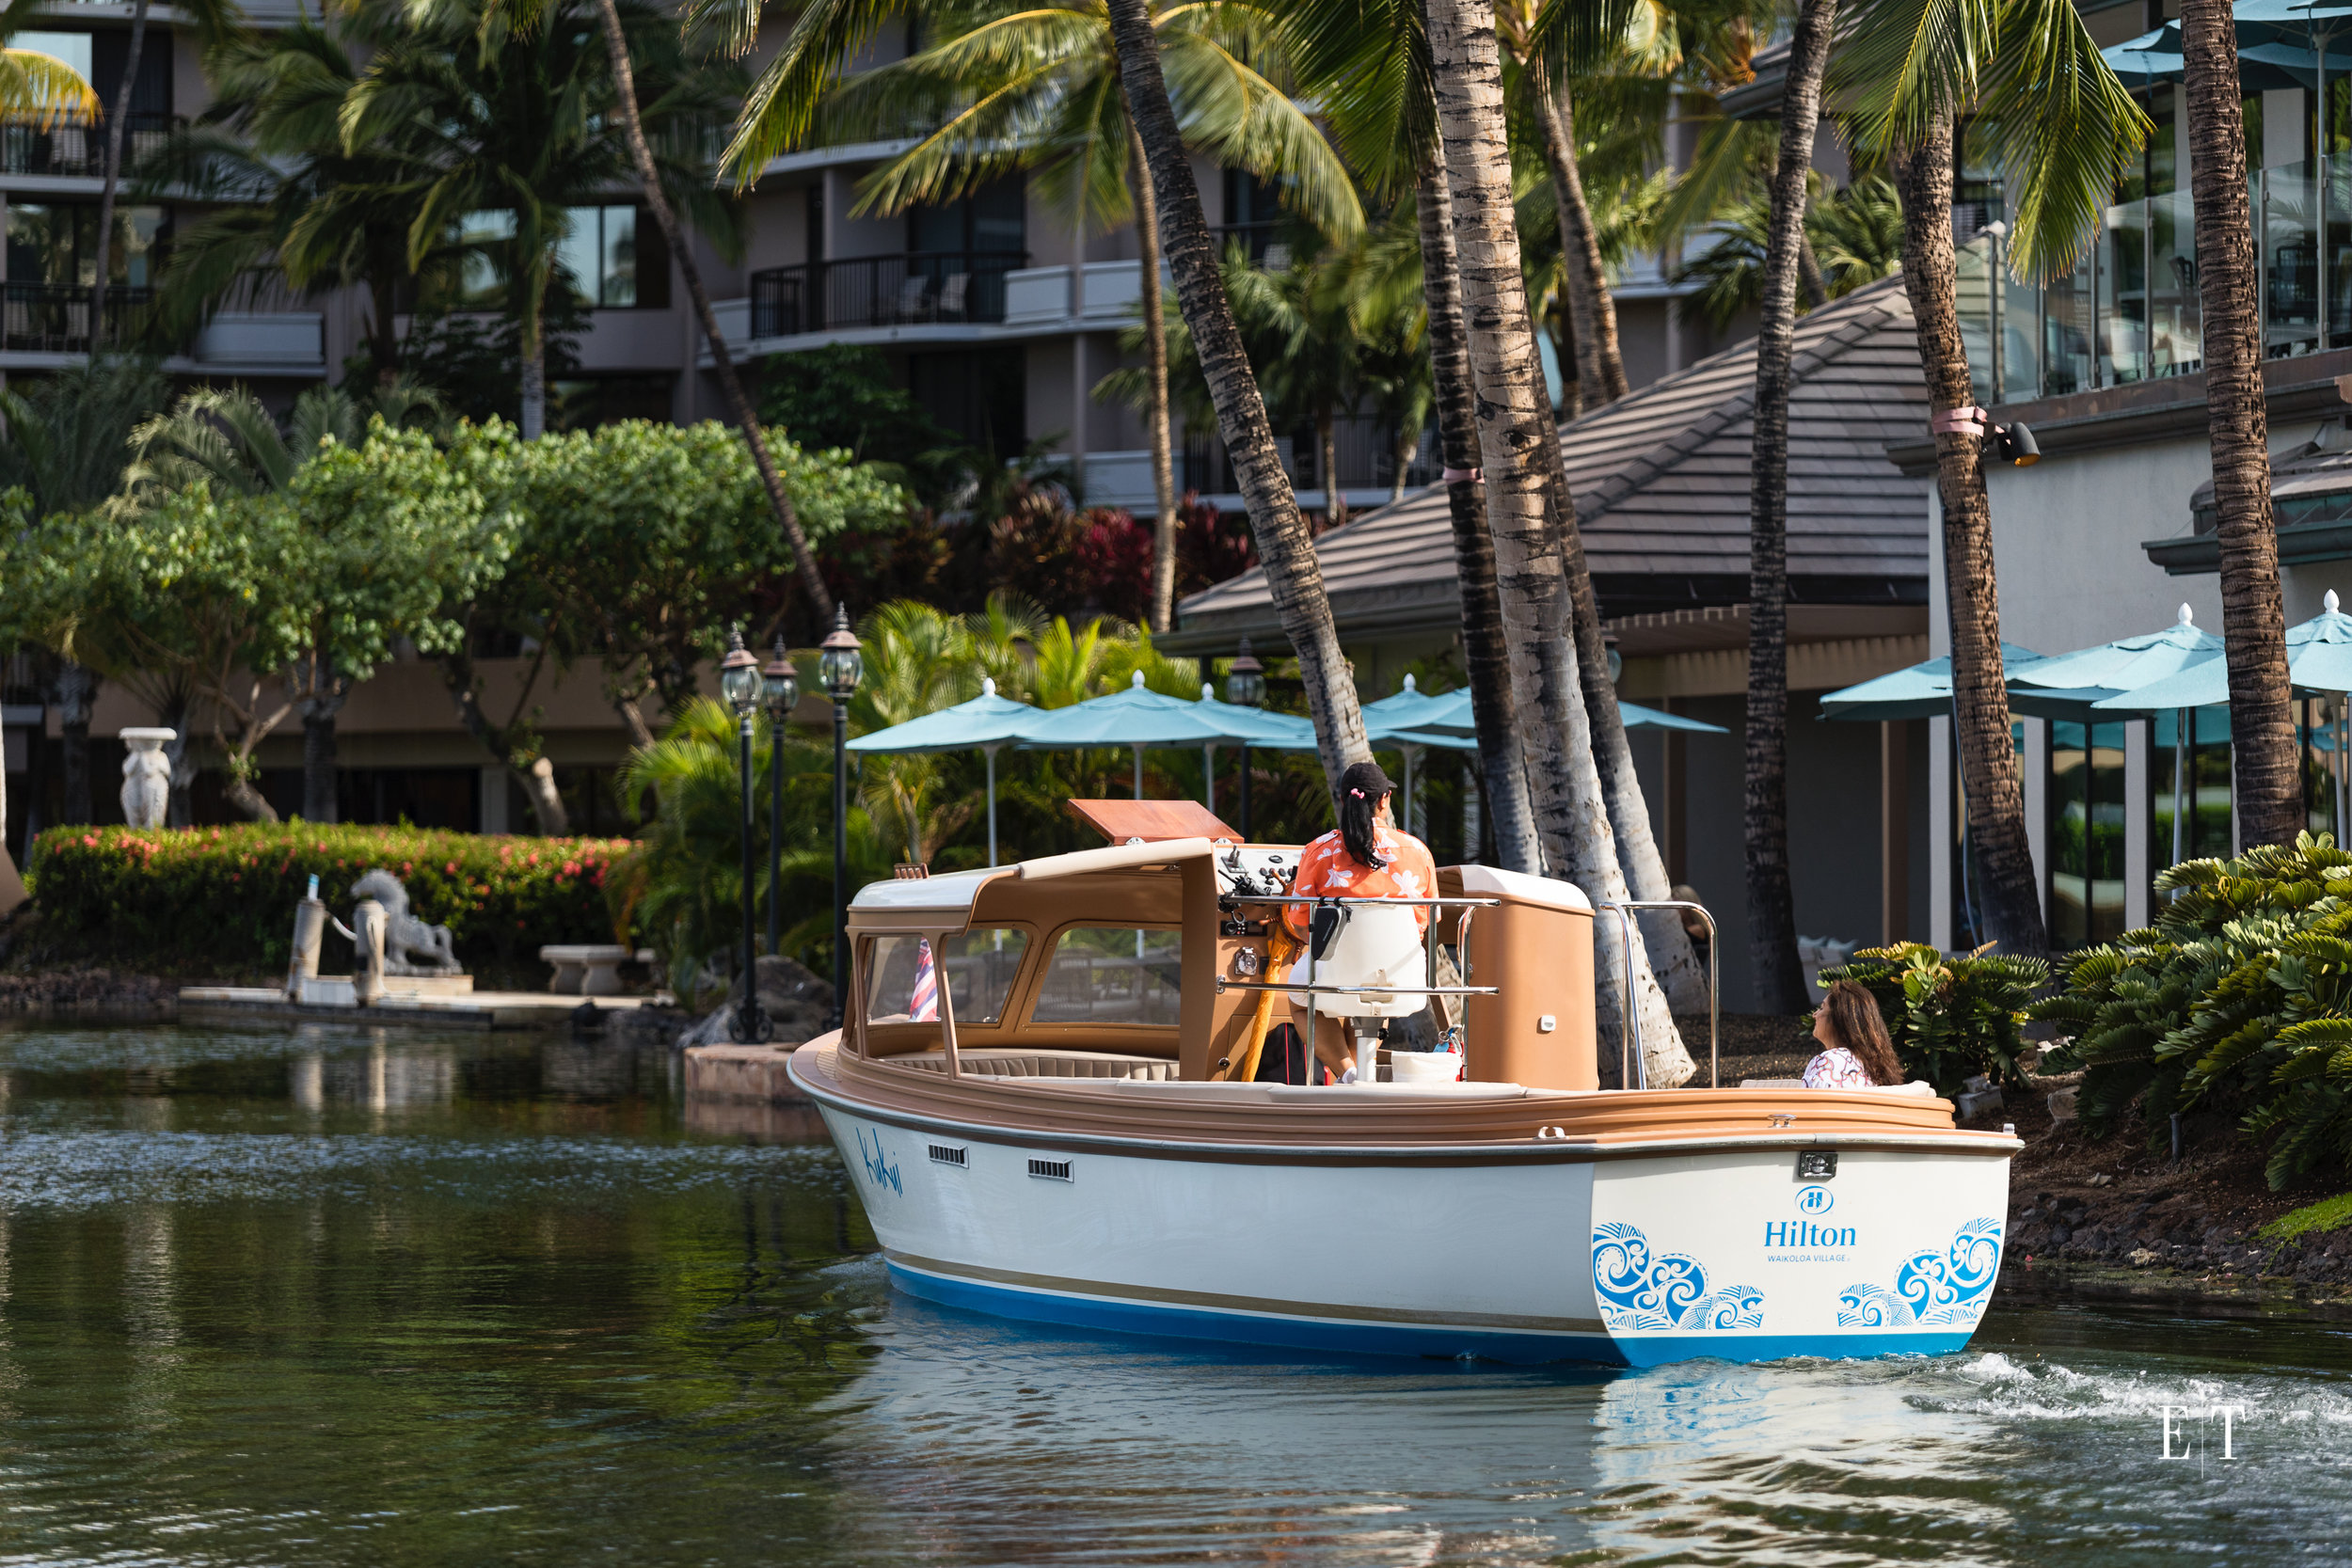 Hilton Waikoloa Village brand new electric boat